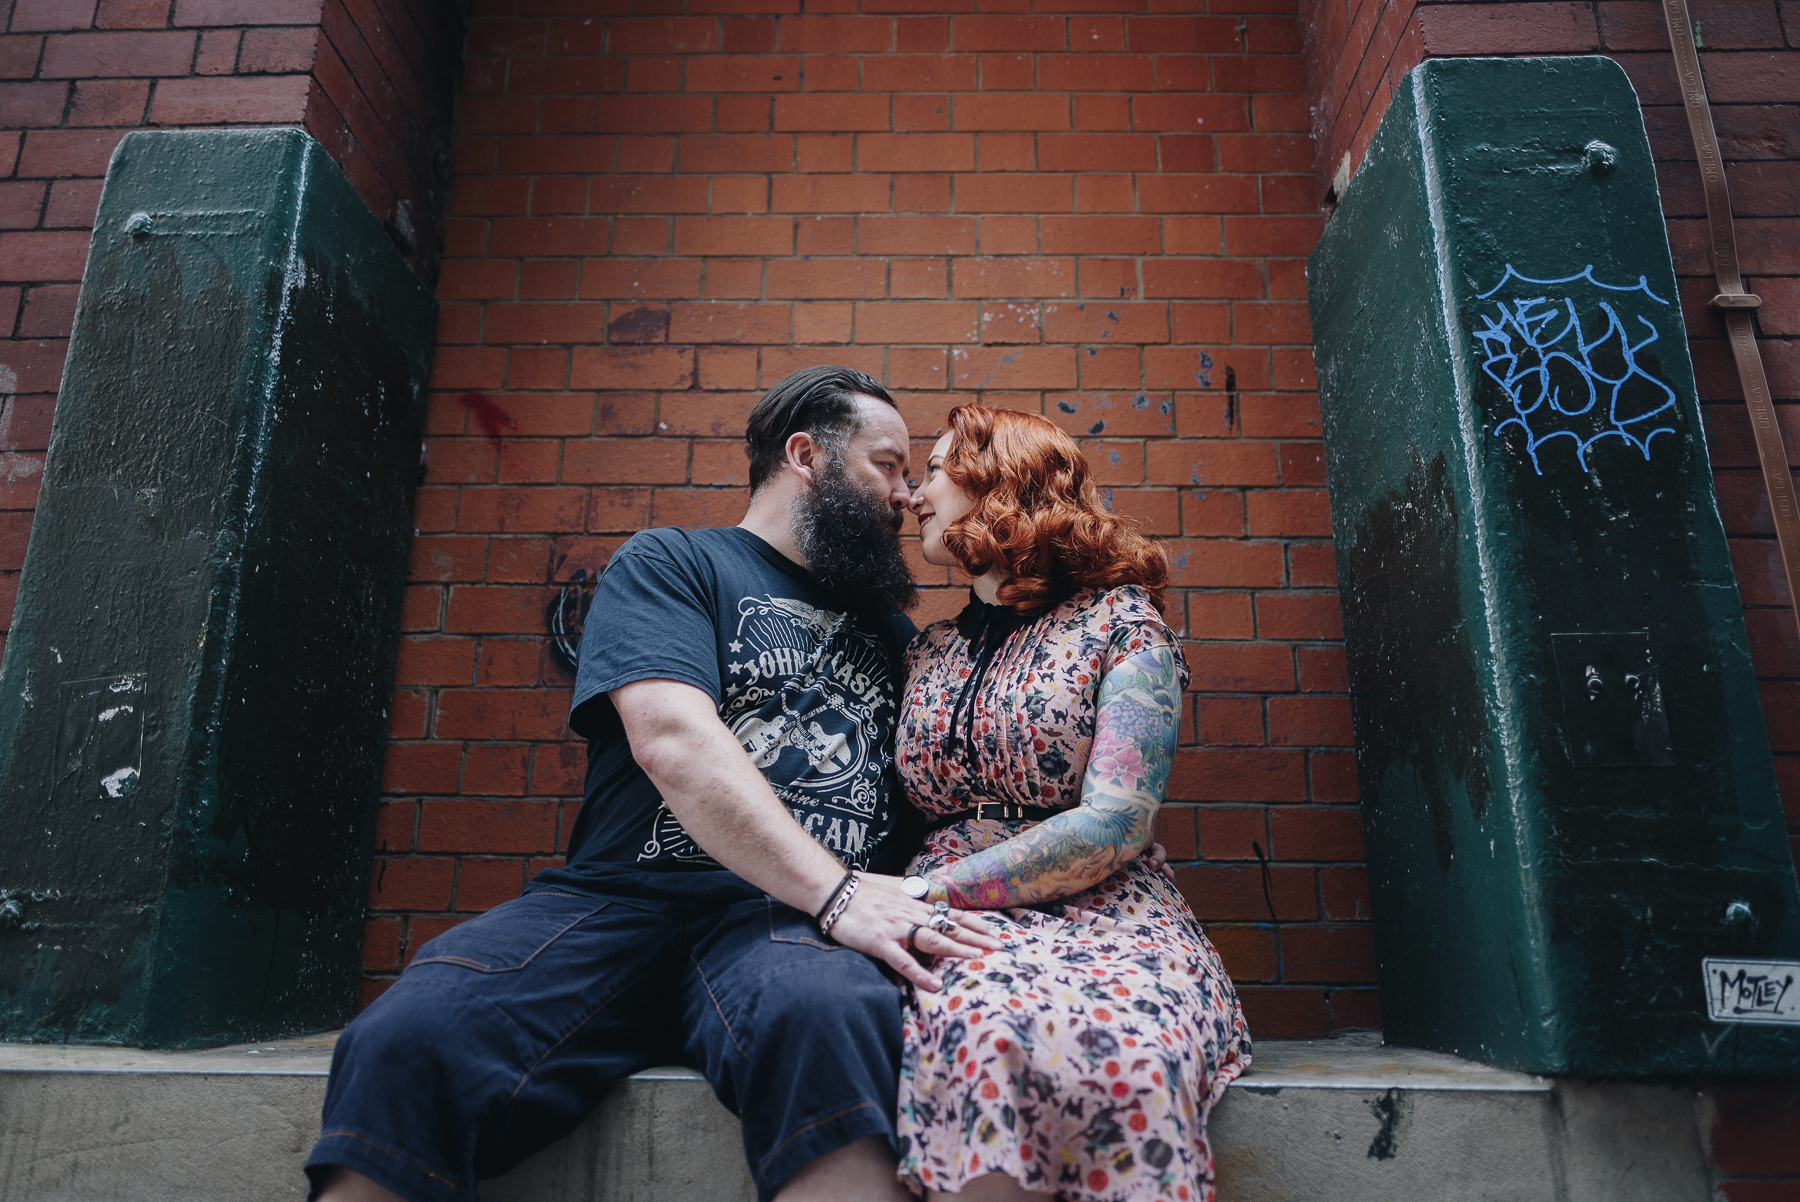 Manchester_Engagement_Photography_Northers_Quarter_The_Pin-Up_Bride-44.jpg